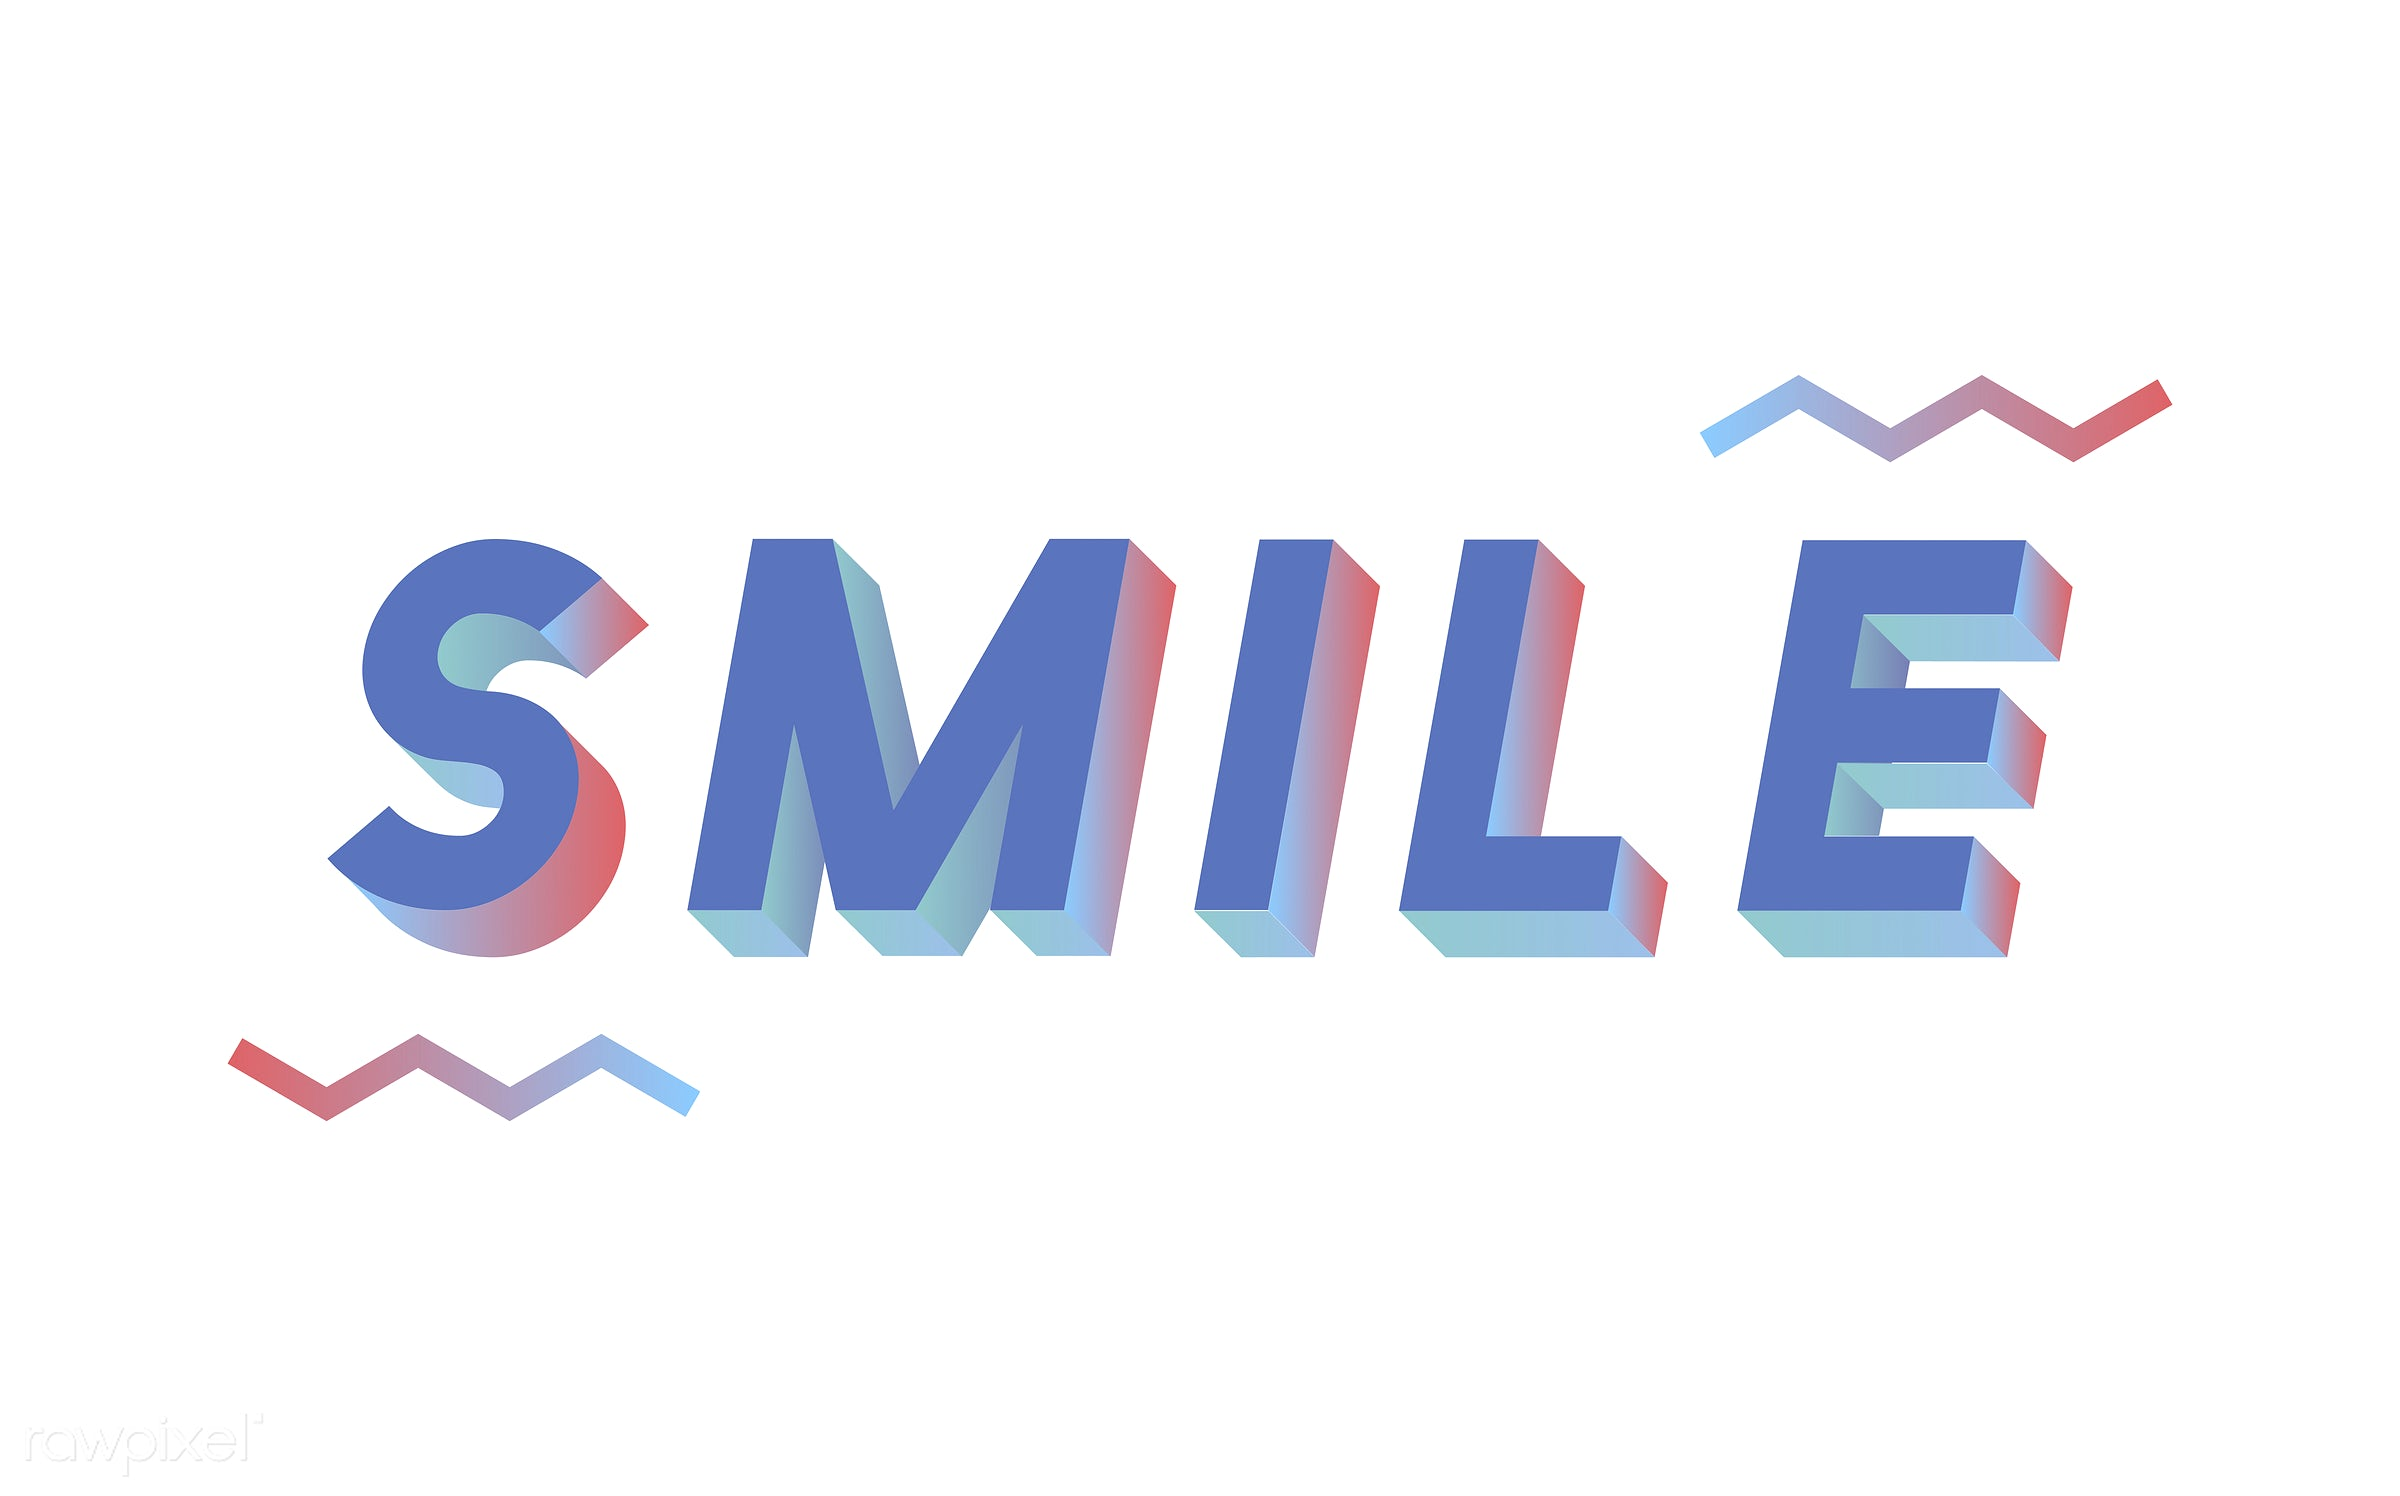 neon, colorful, 3d, three dimensional, vector, illustration, graphic, word, white, blue, smile, laugh, be happy